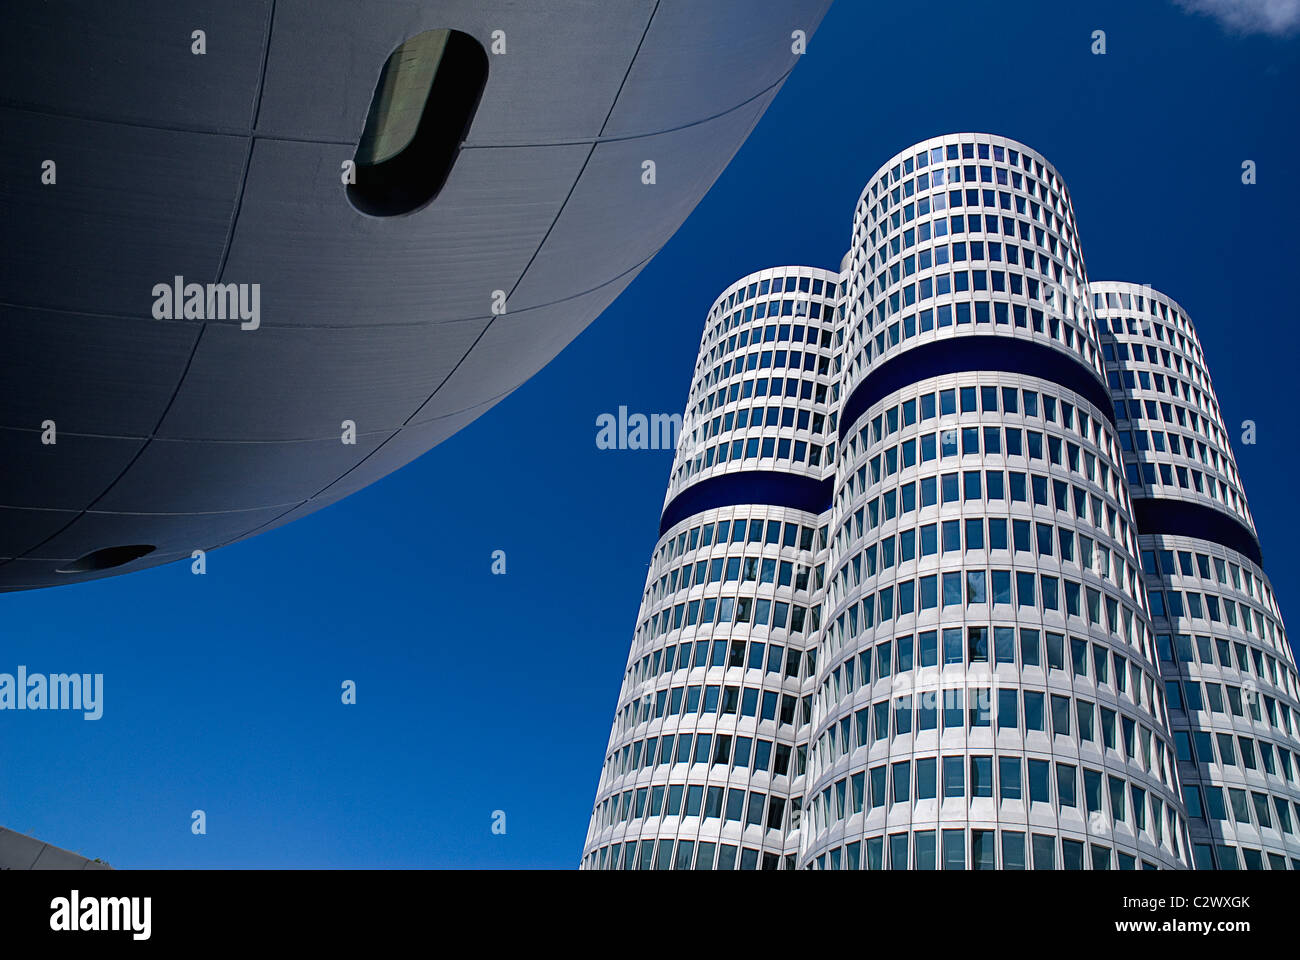 Germany, Bavaria, Munich, BMW Headquarters, The BMW Tower is 101 metres tall and mimics the shape of tyres. - Stock Image